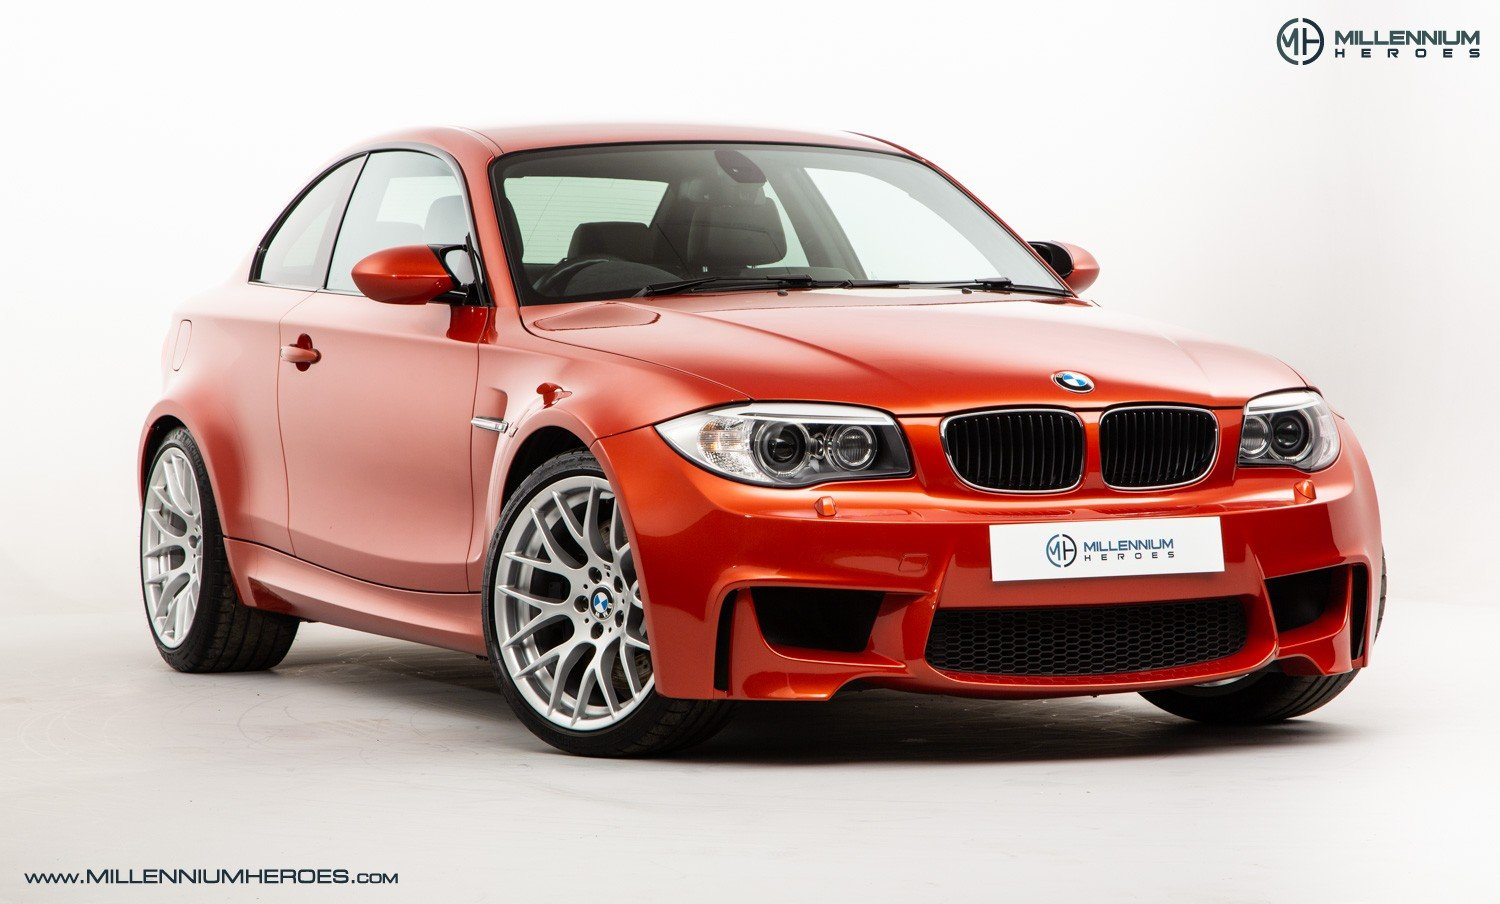 2011 BMW 1M COUPE  For Sale (picture 2 of 6)